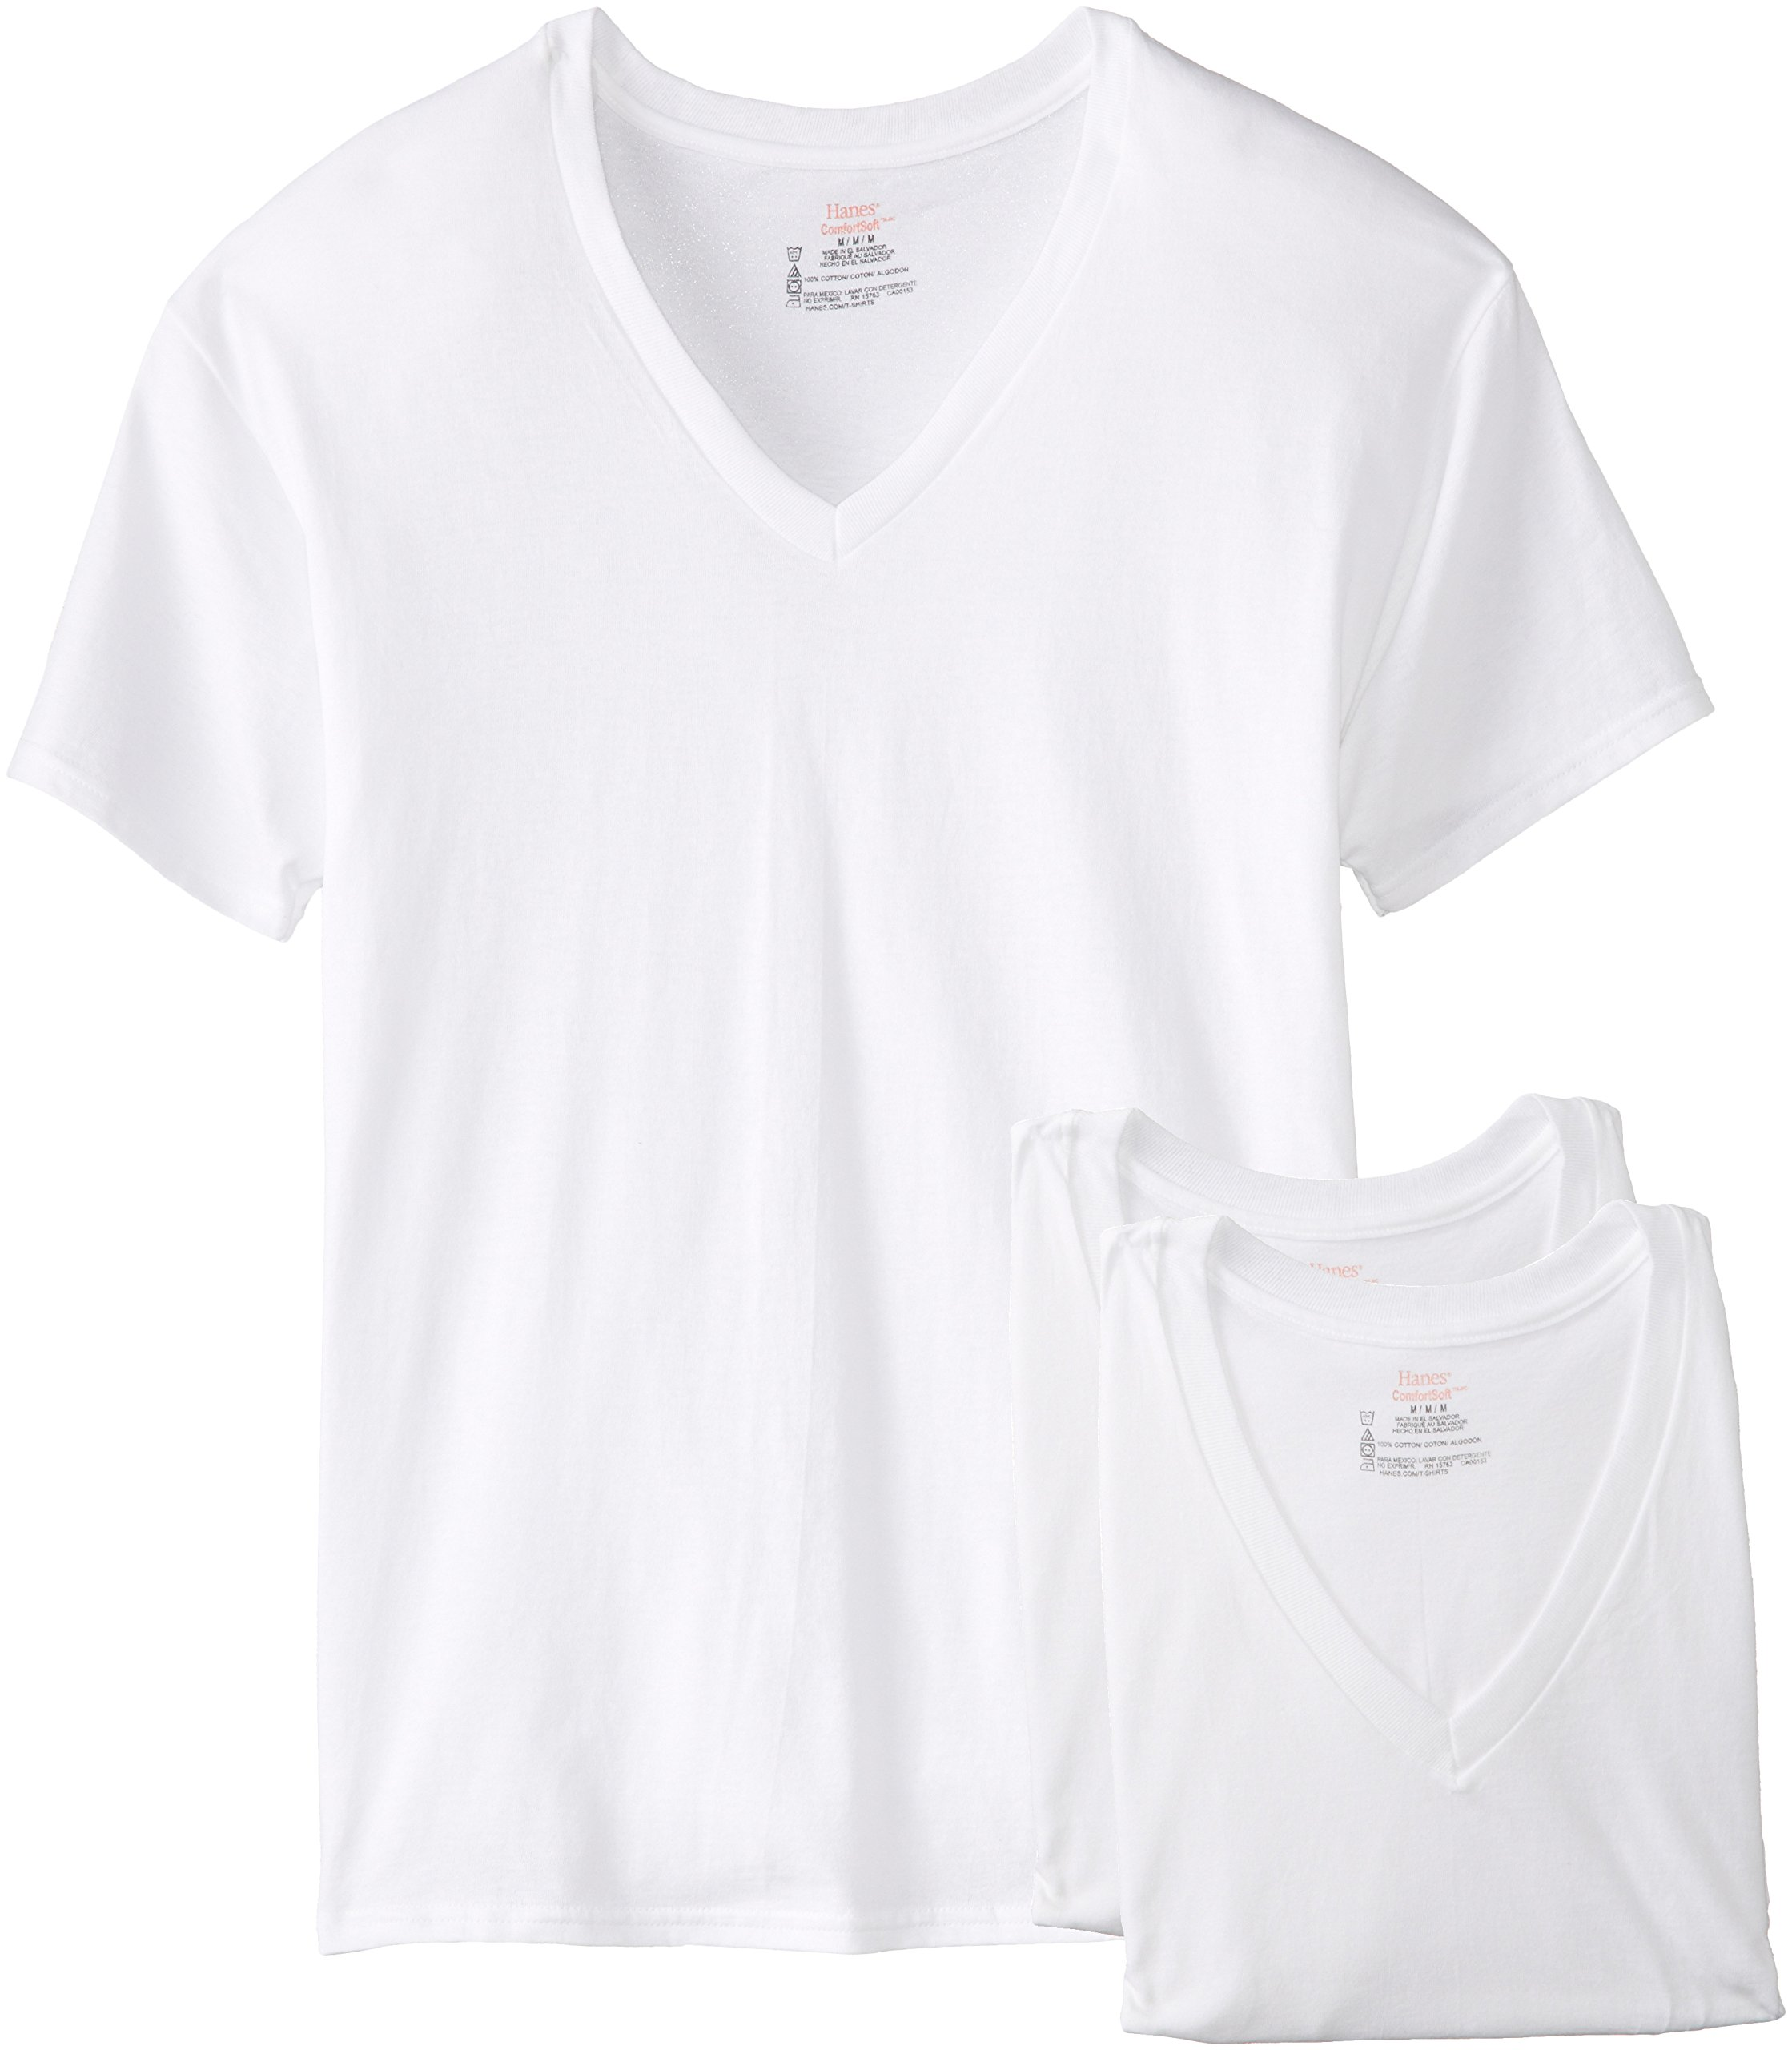 Hanes Men's 3-Pack V-Neck T-Shirt (XXX-Large Tall, White) by Hanes